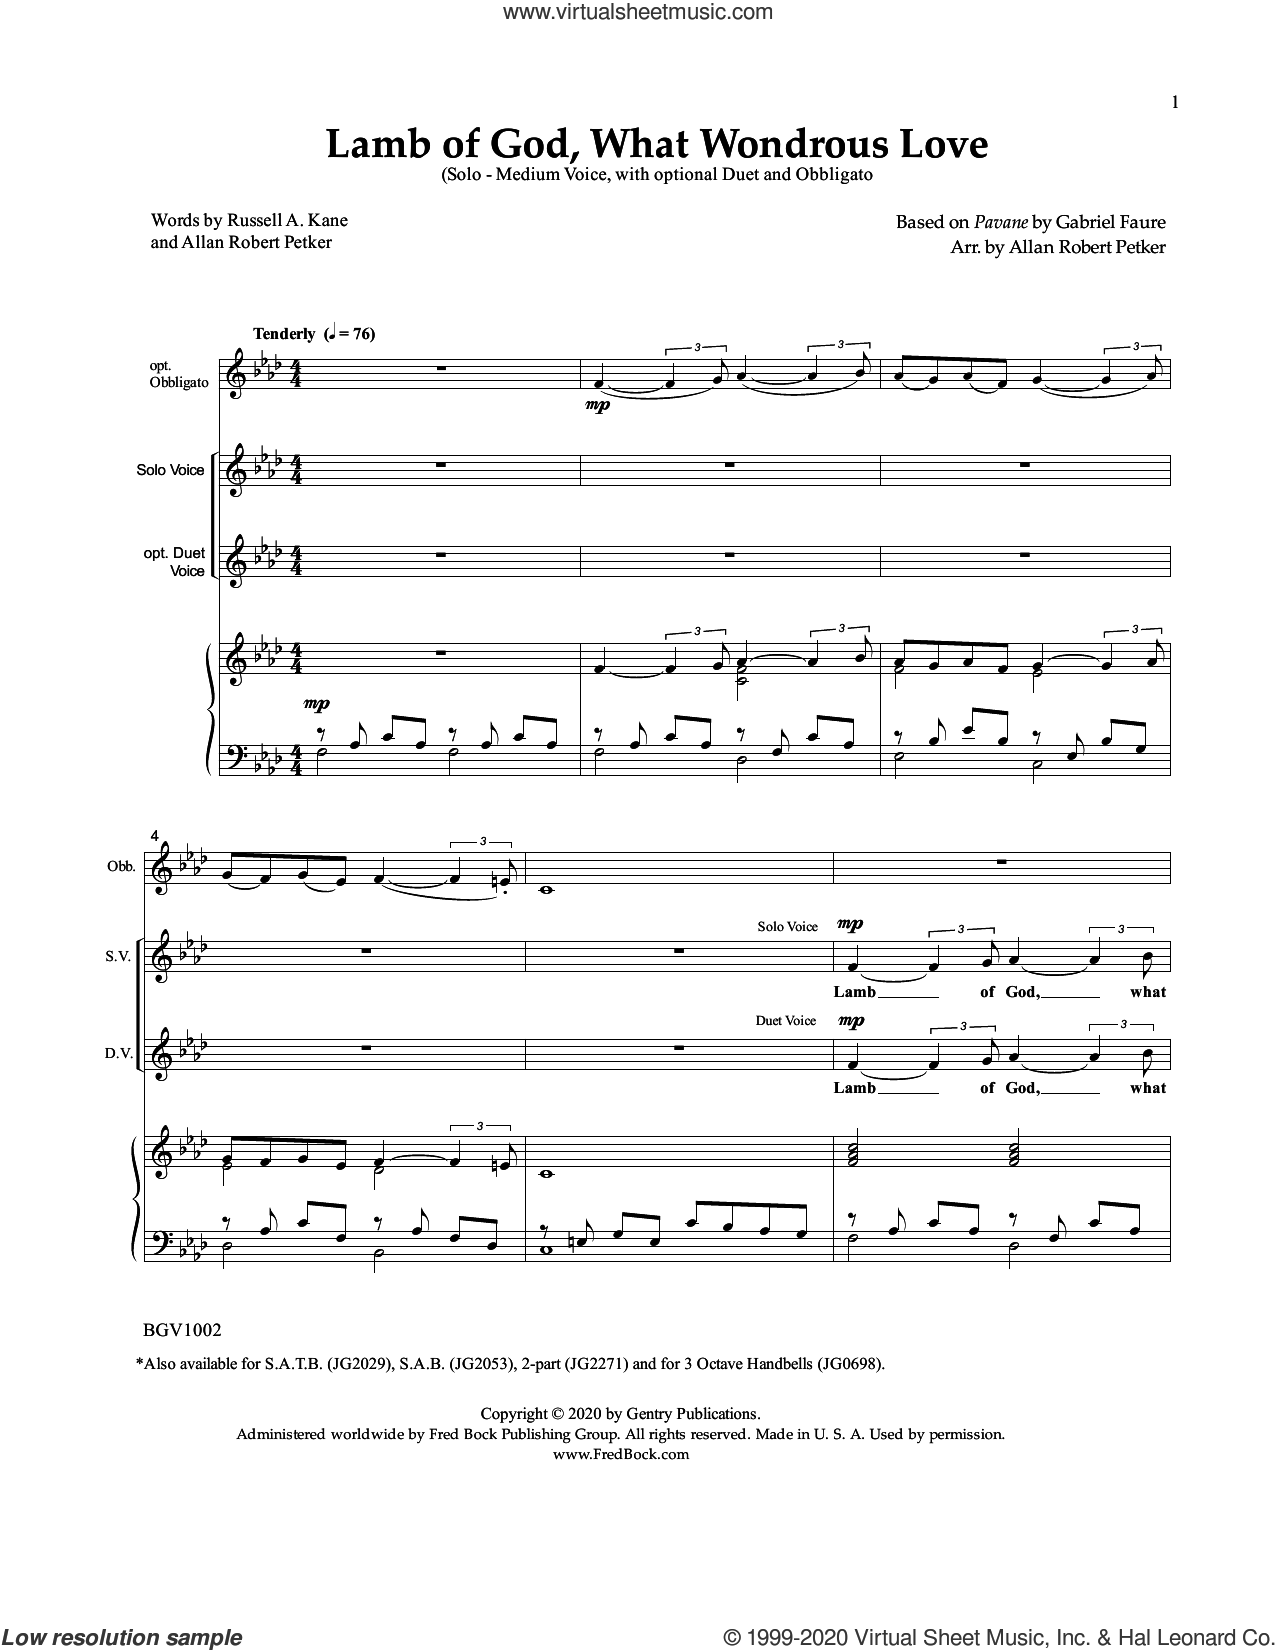 Lamb of God, What Wondrous Love sheet music for voice and piano by Gabriel Faure and Allan Petker, intermediate skill level